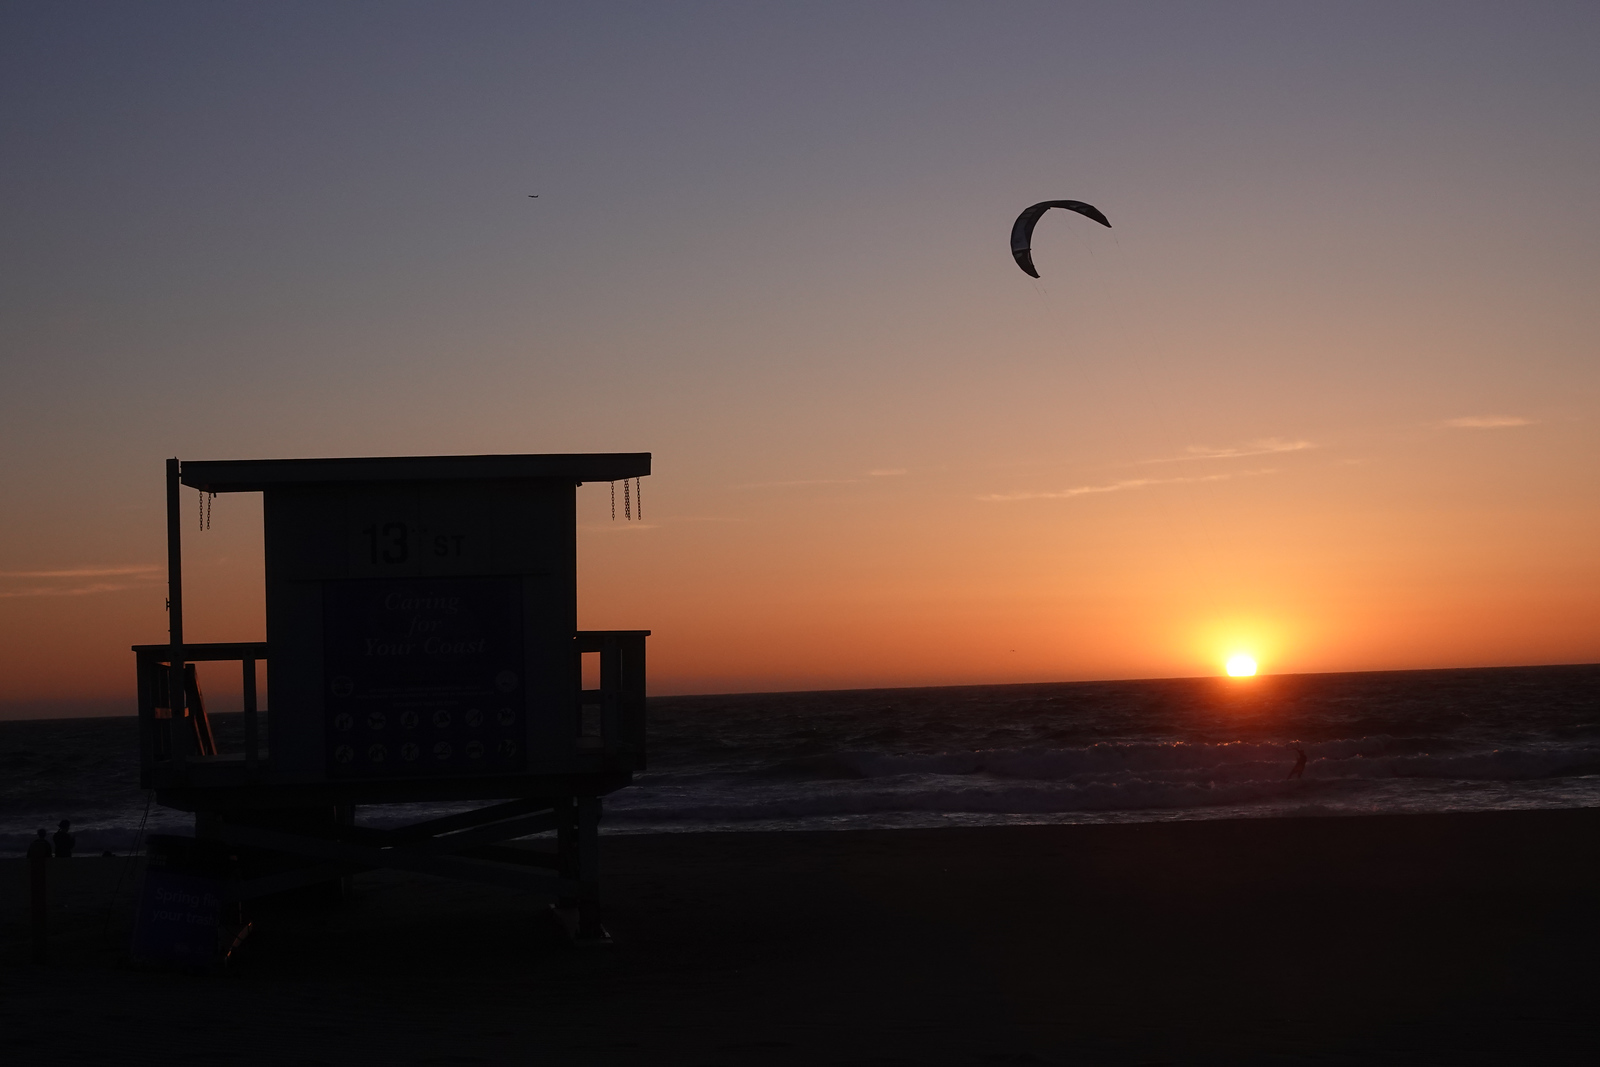 A kite flies over a lifeguard station at sunset in Hermosa Beach